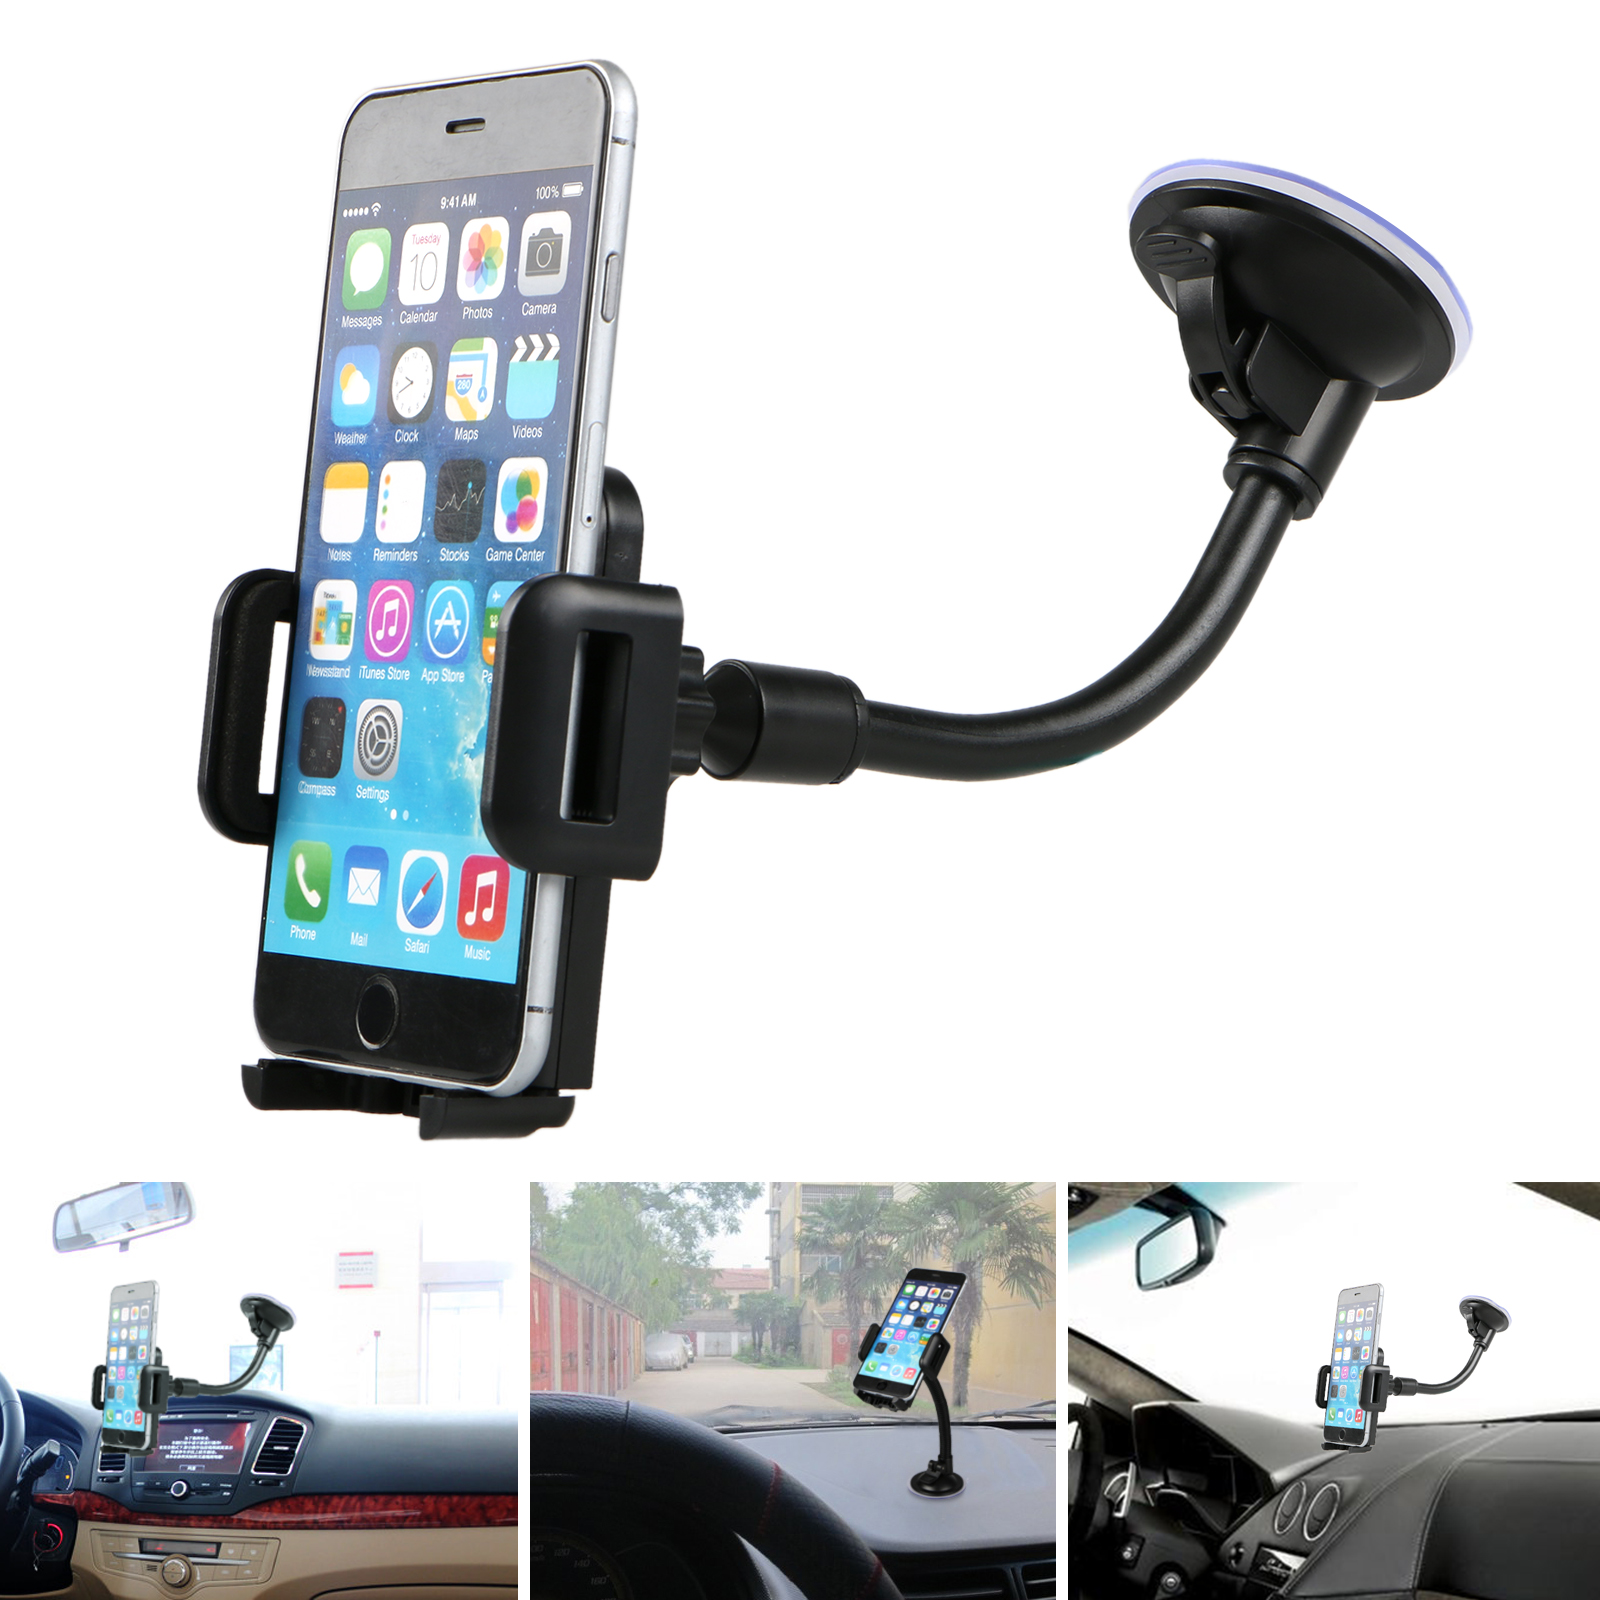 dashboard stand or Air Vend For Mobile Phone 360° Mount Holder on Car window